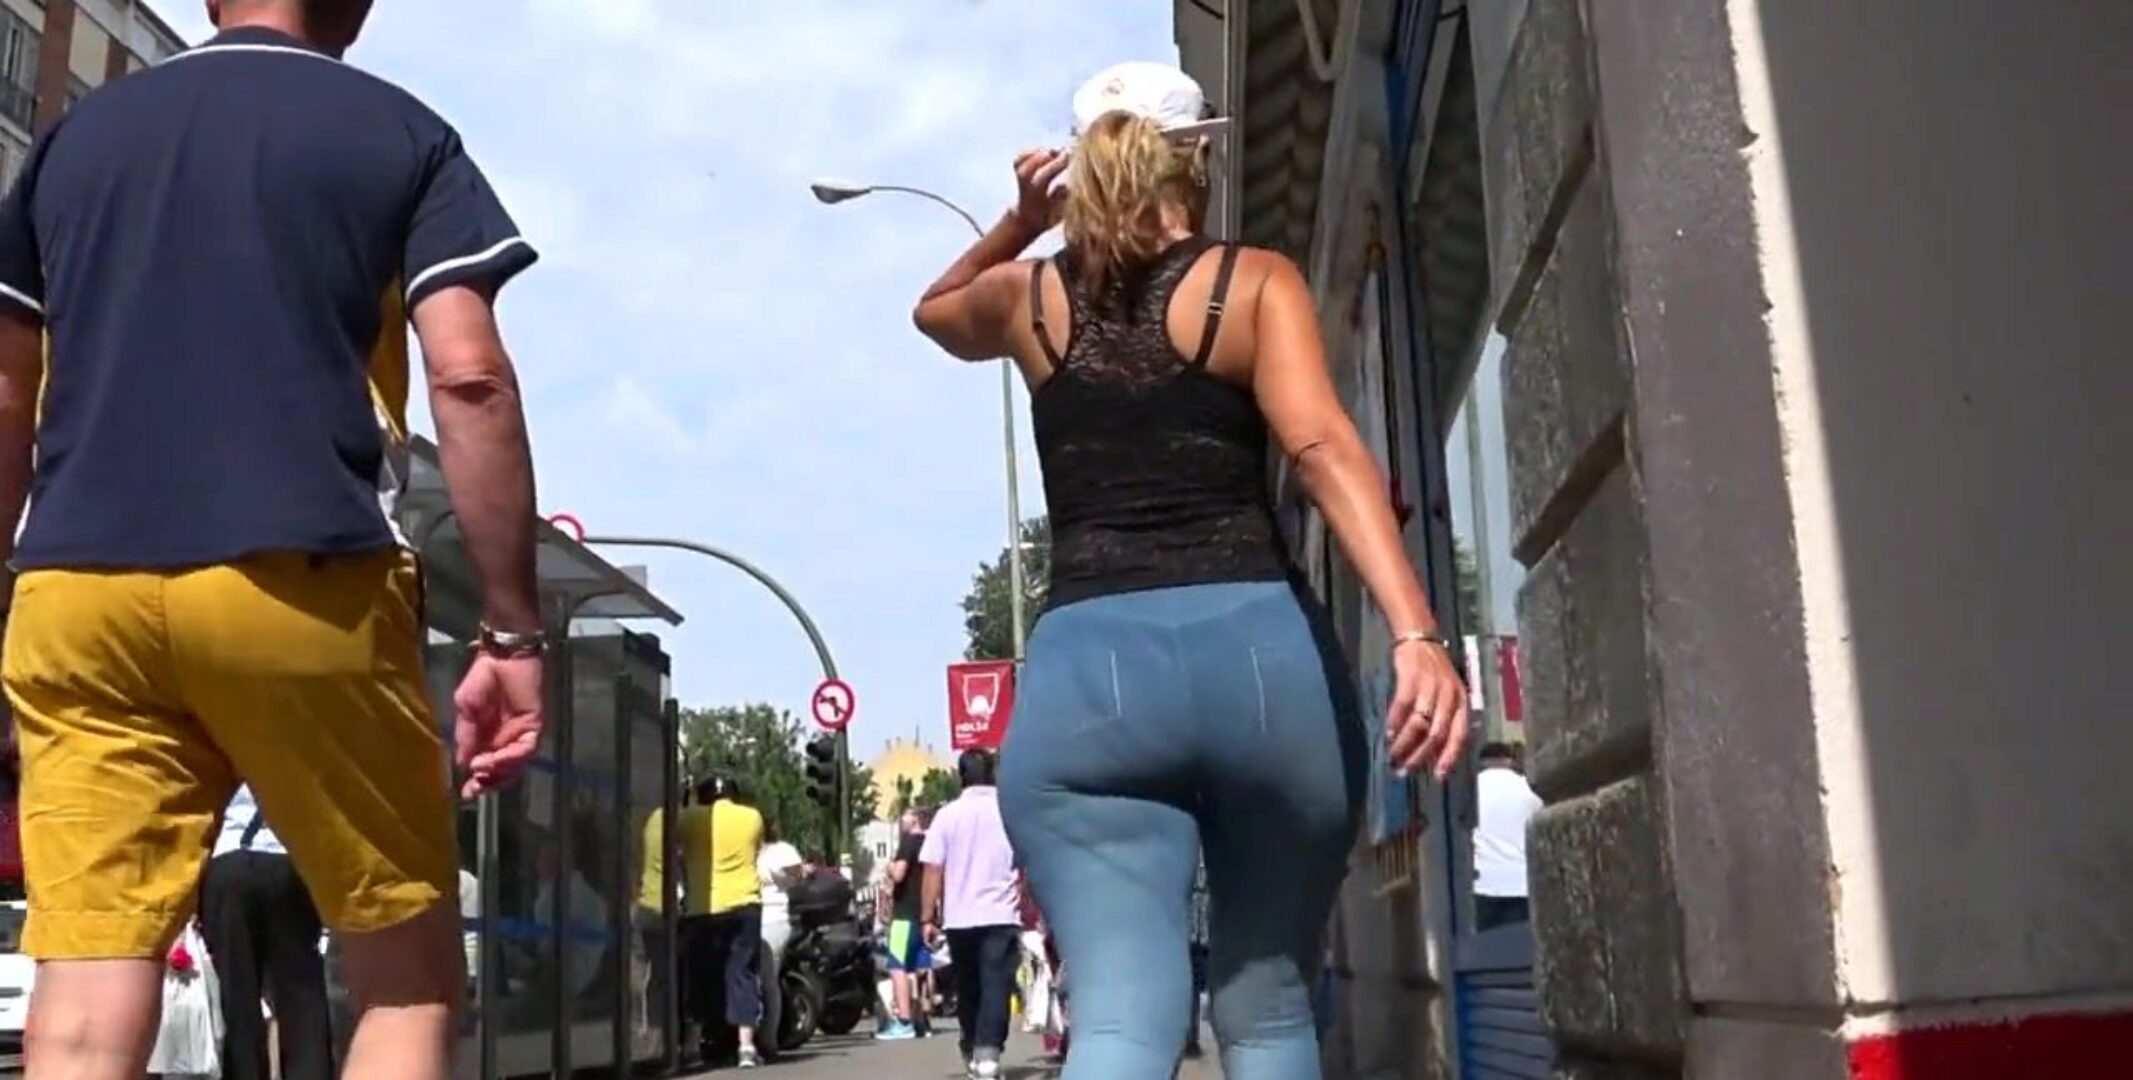 Spanish Candid Asses Gluteus Divinus - Free Porn Videos - YouPorn Watch Spanish candid booties GLUTEUS DIVINUS online on YouPorn.com. YouPorn is the largest BBW porn video site with the greatest selection of free high quality leggings movie scenes Enjoy our HD porno clips on any tool of your choosing!